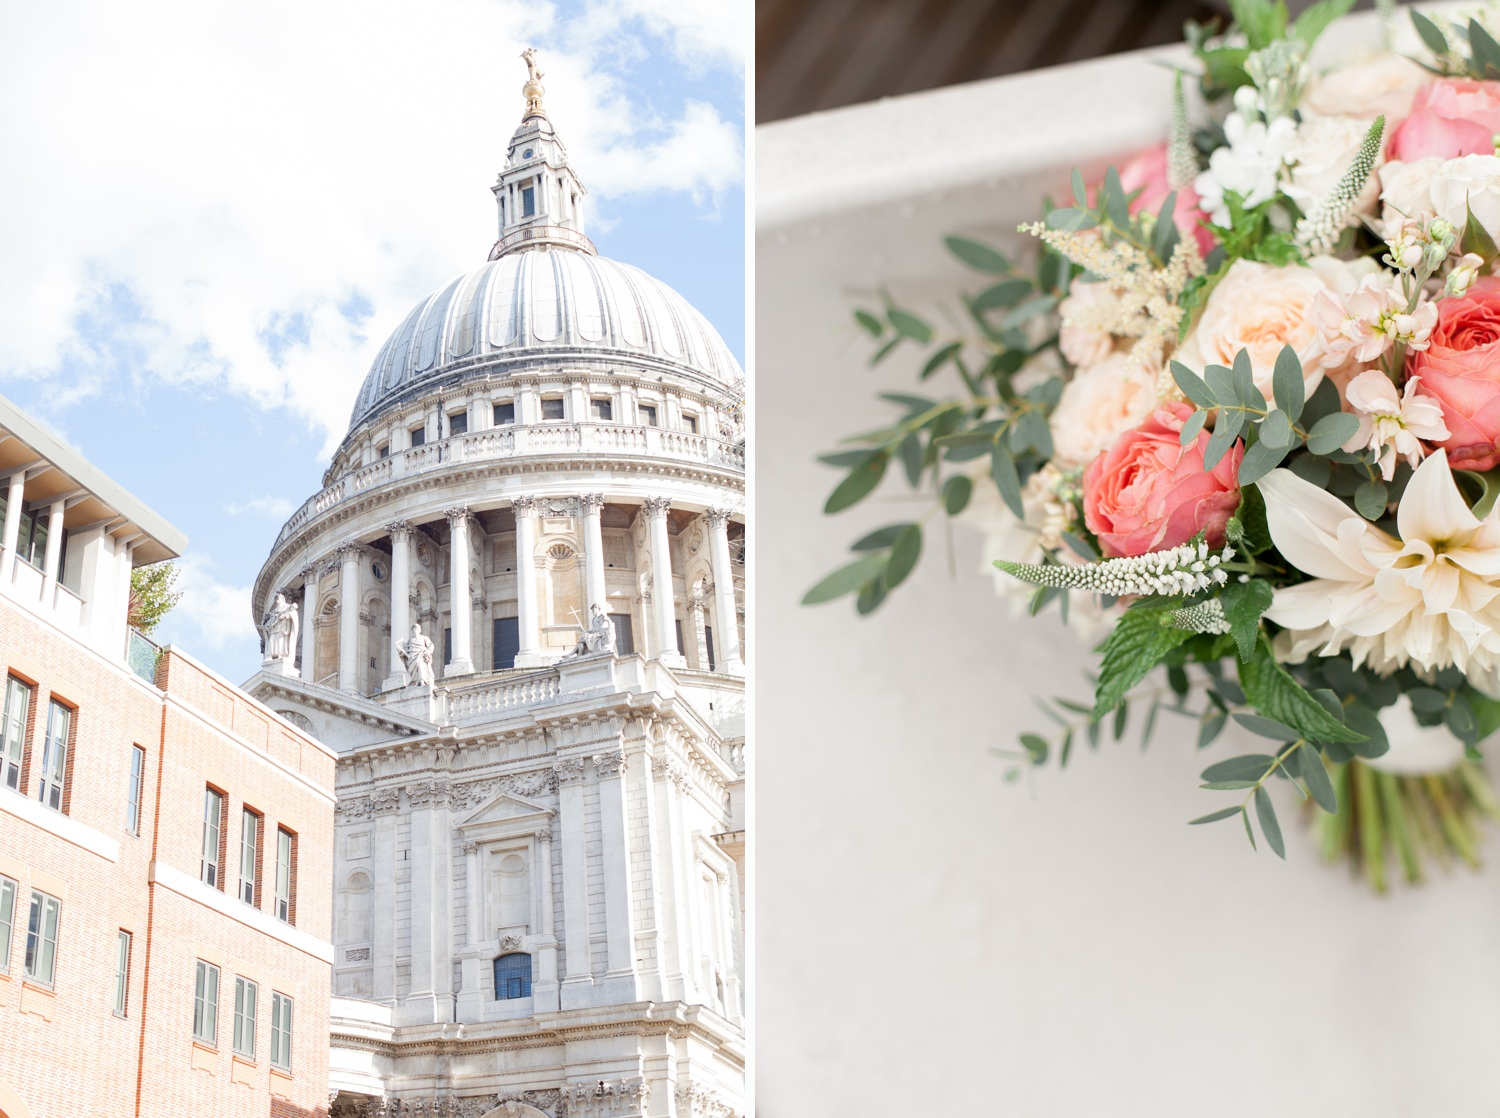 Charlotte & Adam's St. Paul's Cathedral wedding - the dome of St. Paul's